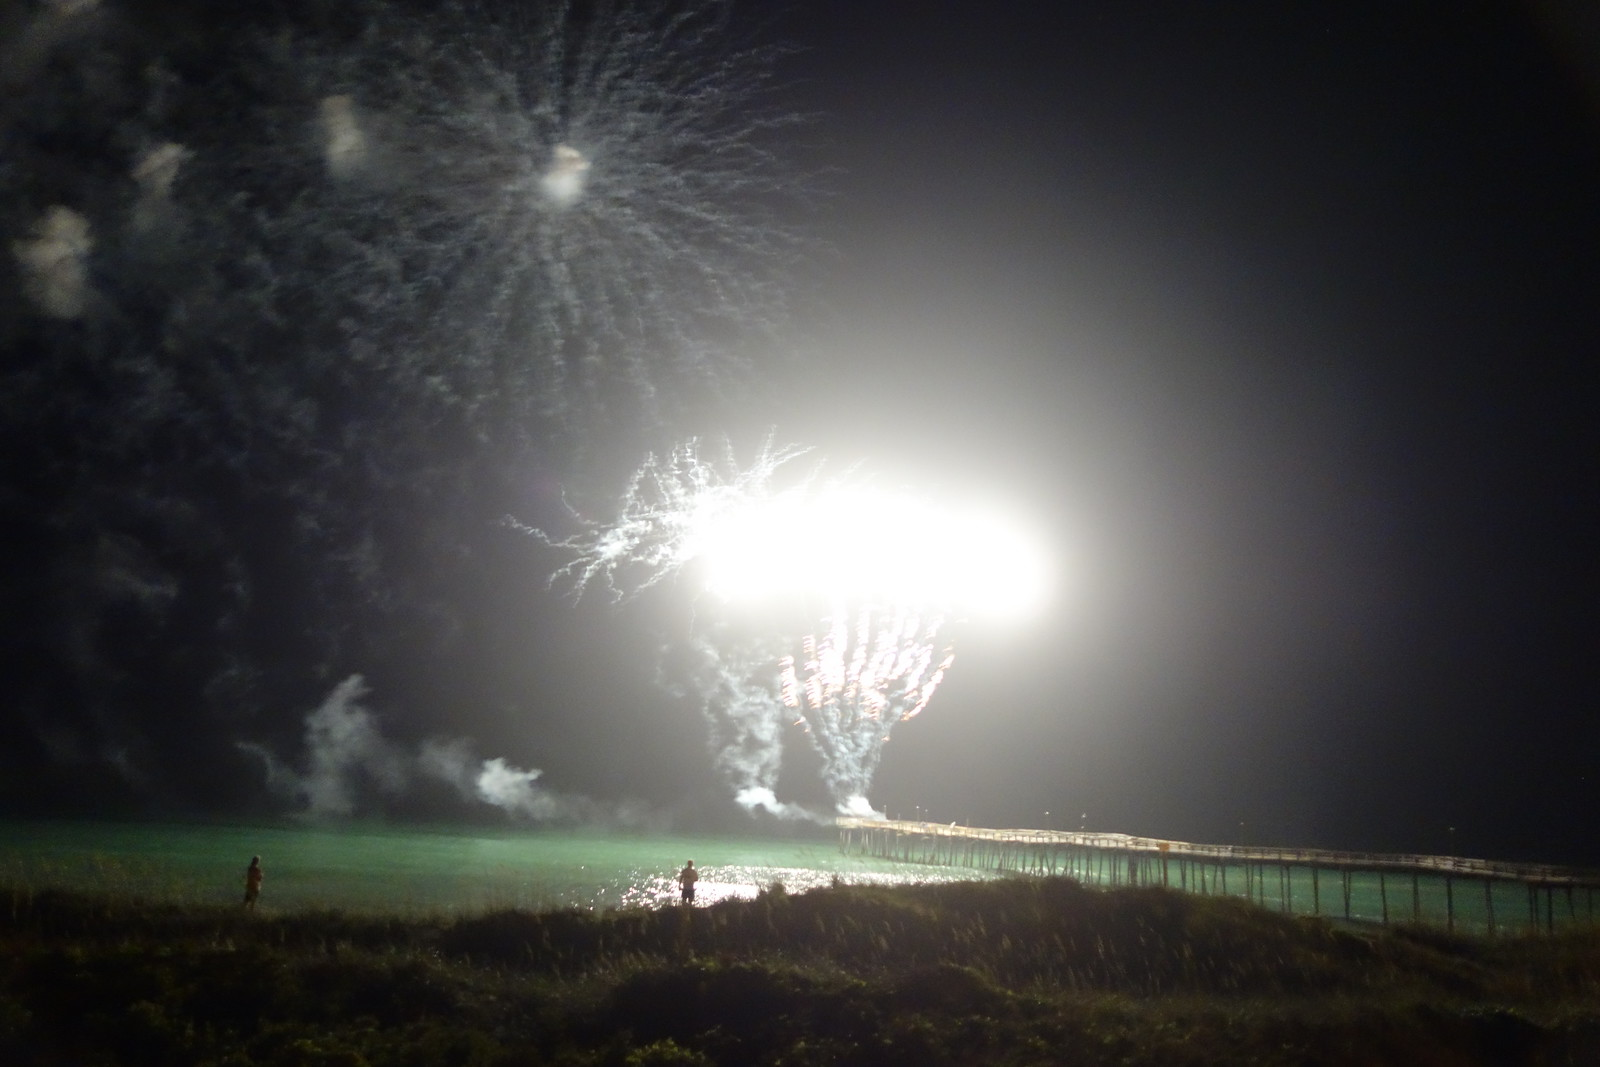 July 4 at OBX